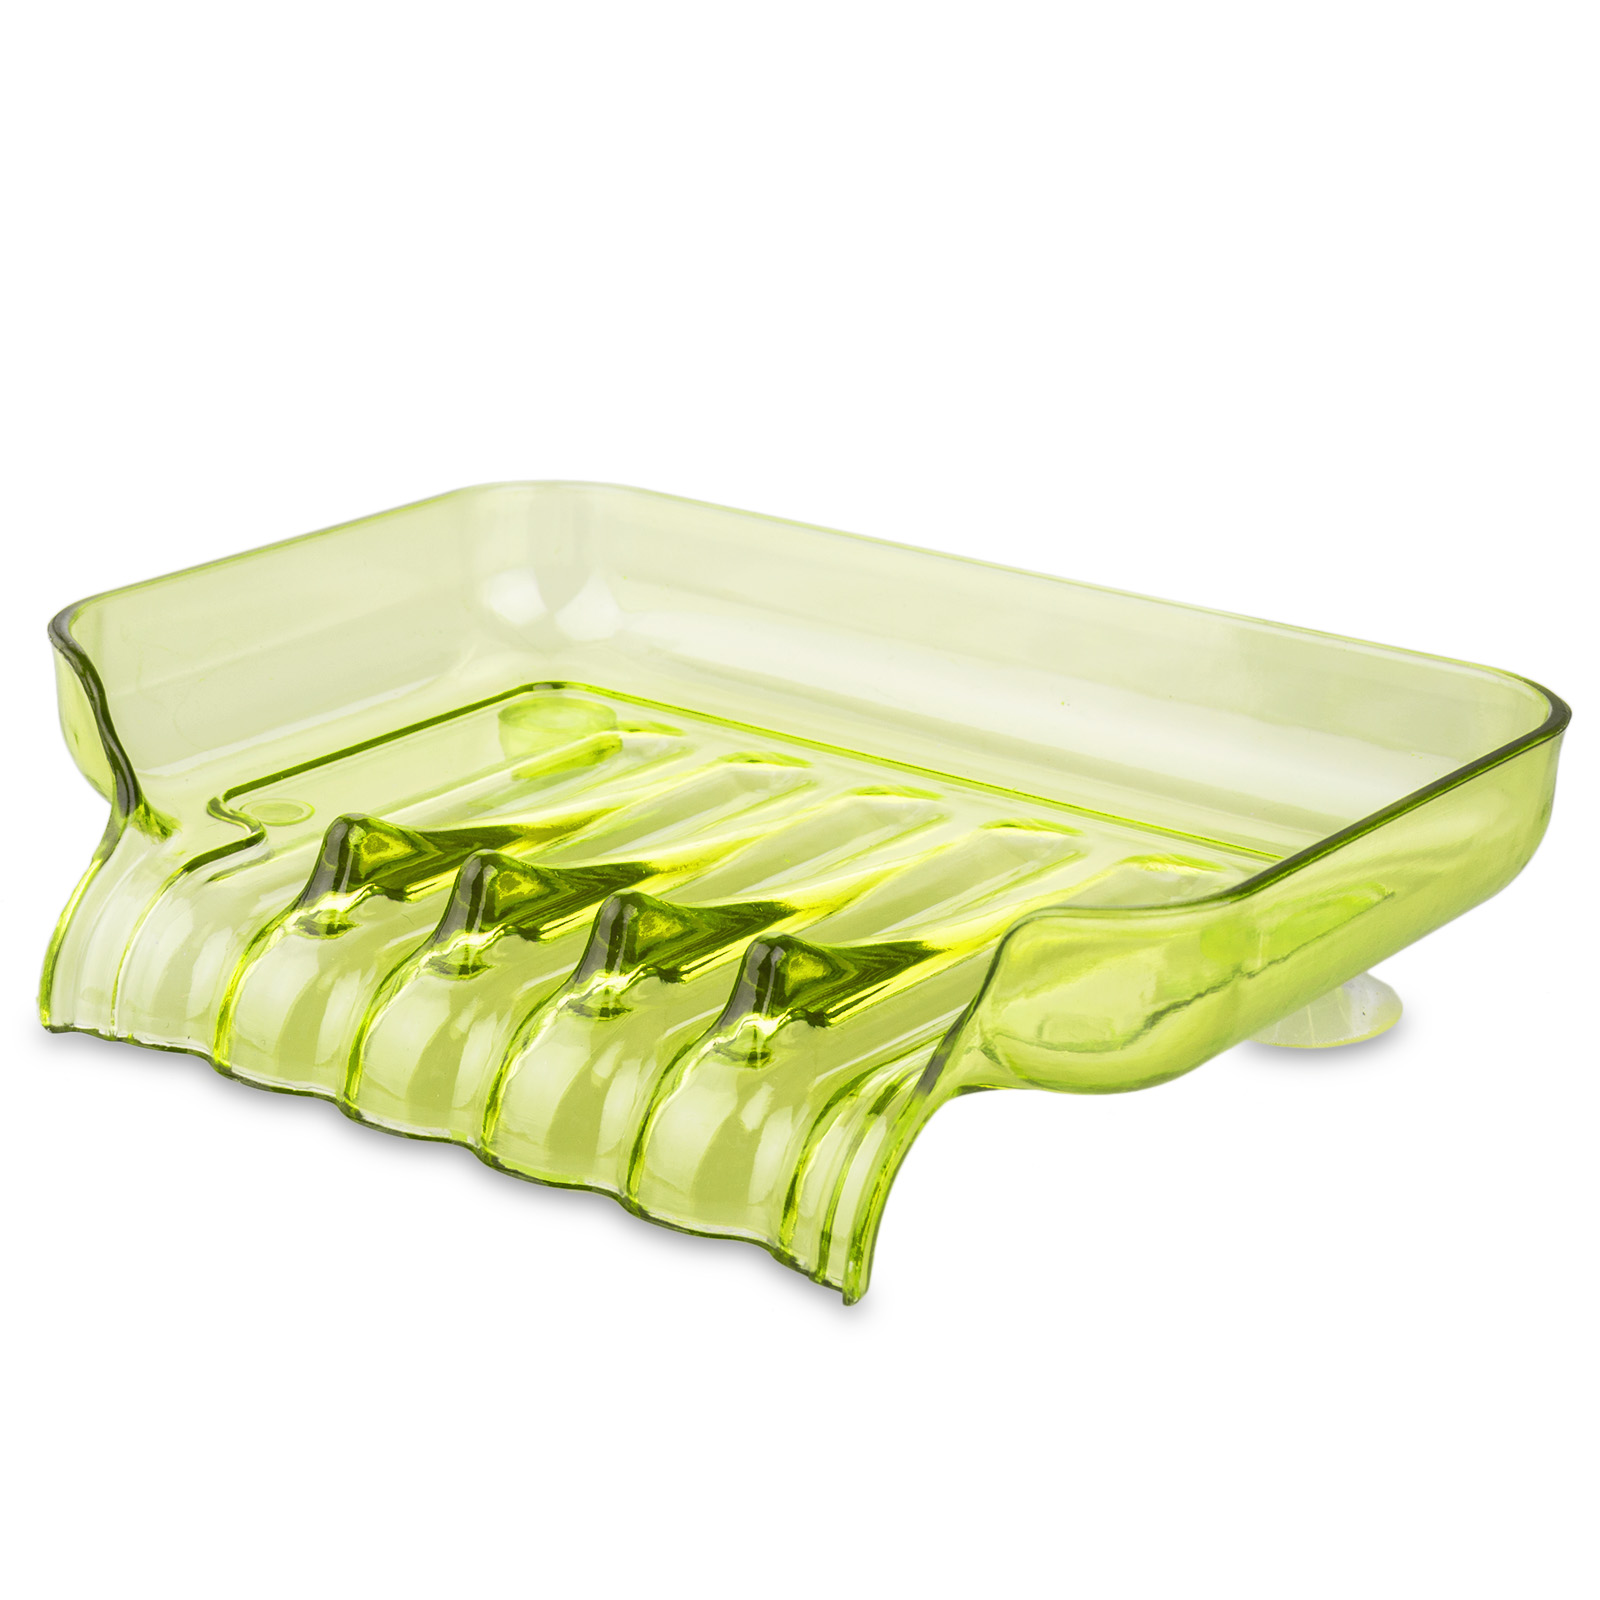 Bathroom-Shower-Soap-Box-Dish-Storage-Plate-Tray-Holder-Case-Container-Suction thumbnail 13